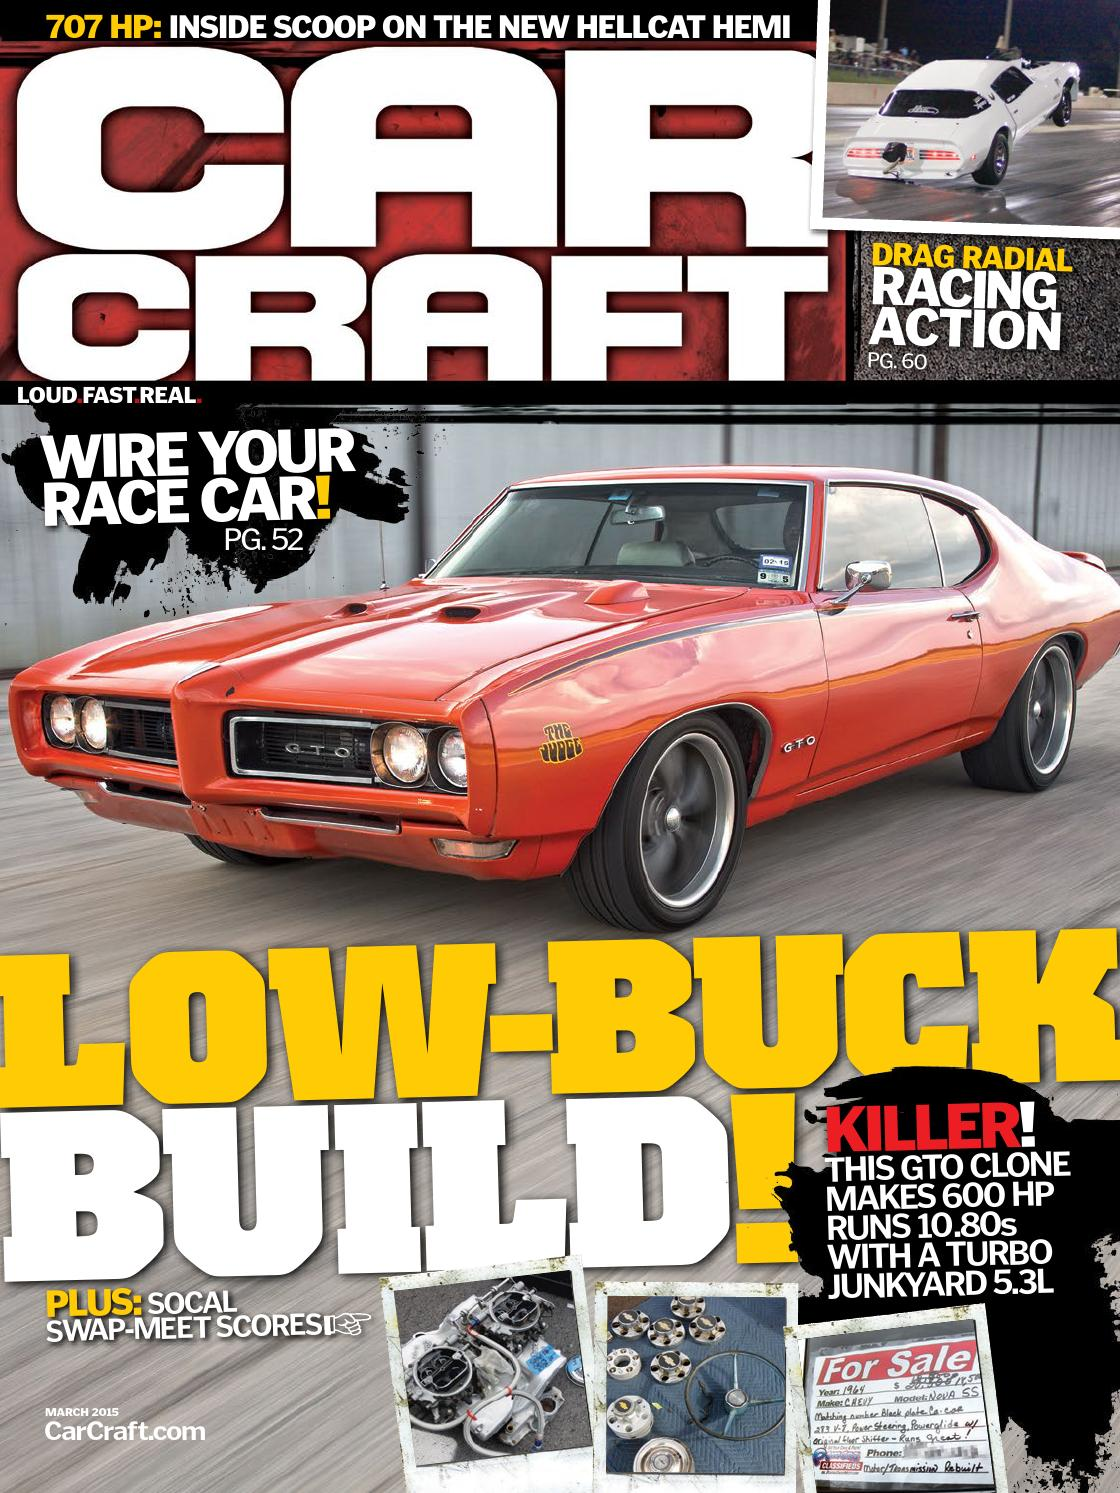 Outstanding Online Car Magazines Images - Classic Cars Ideas - boiq.info